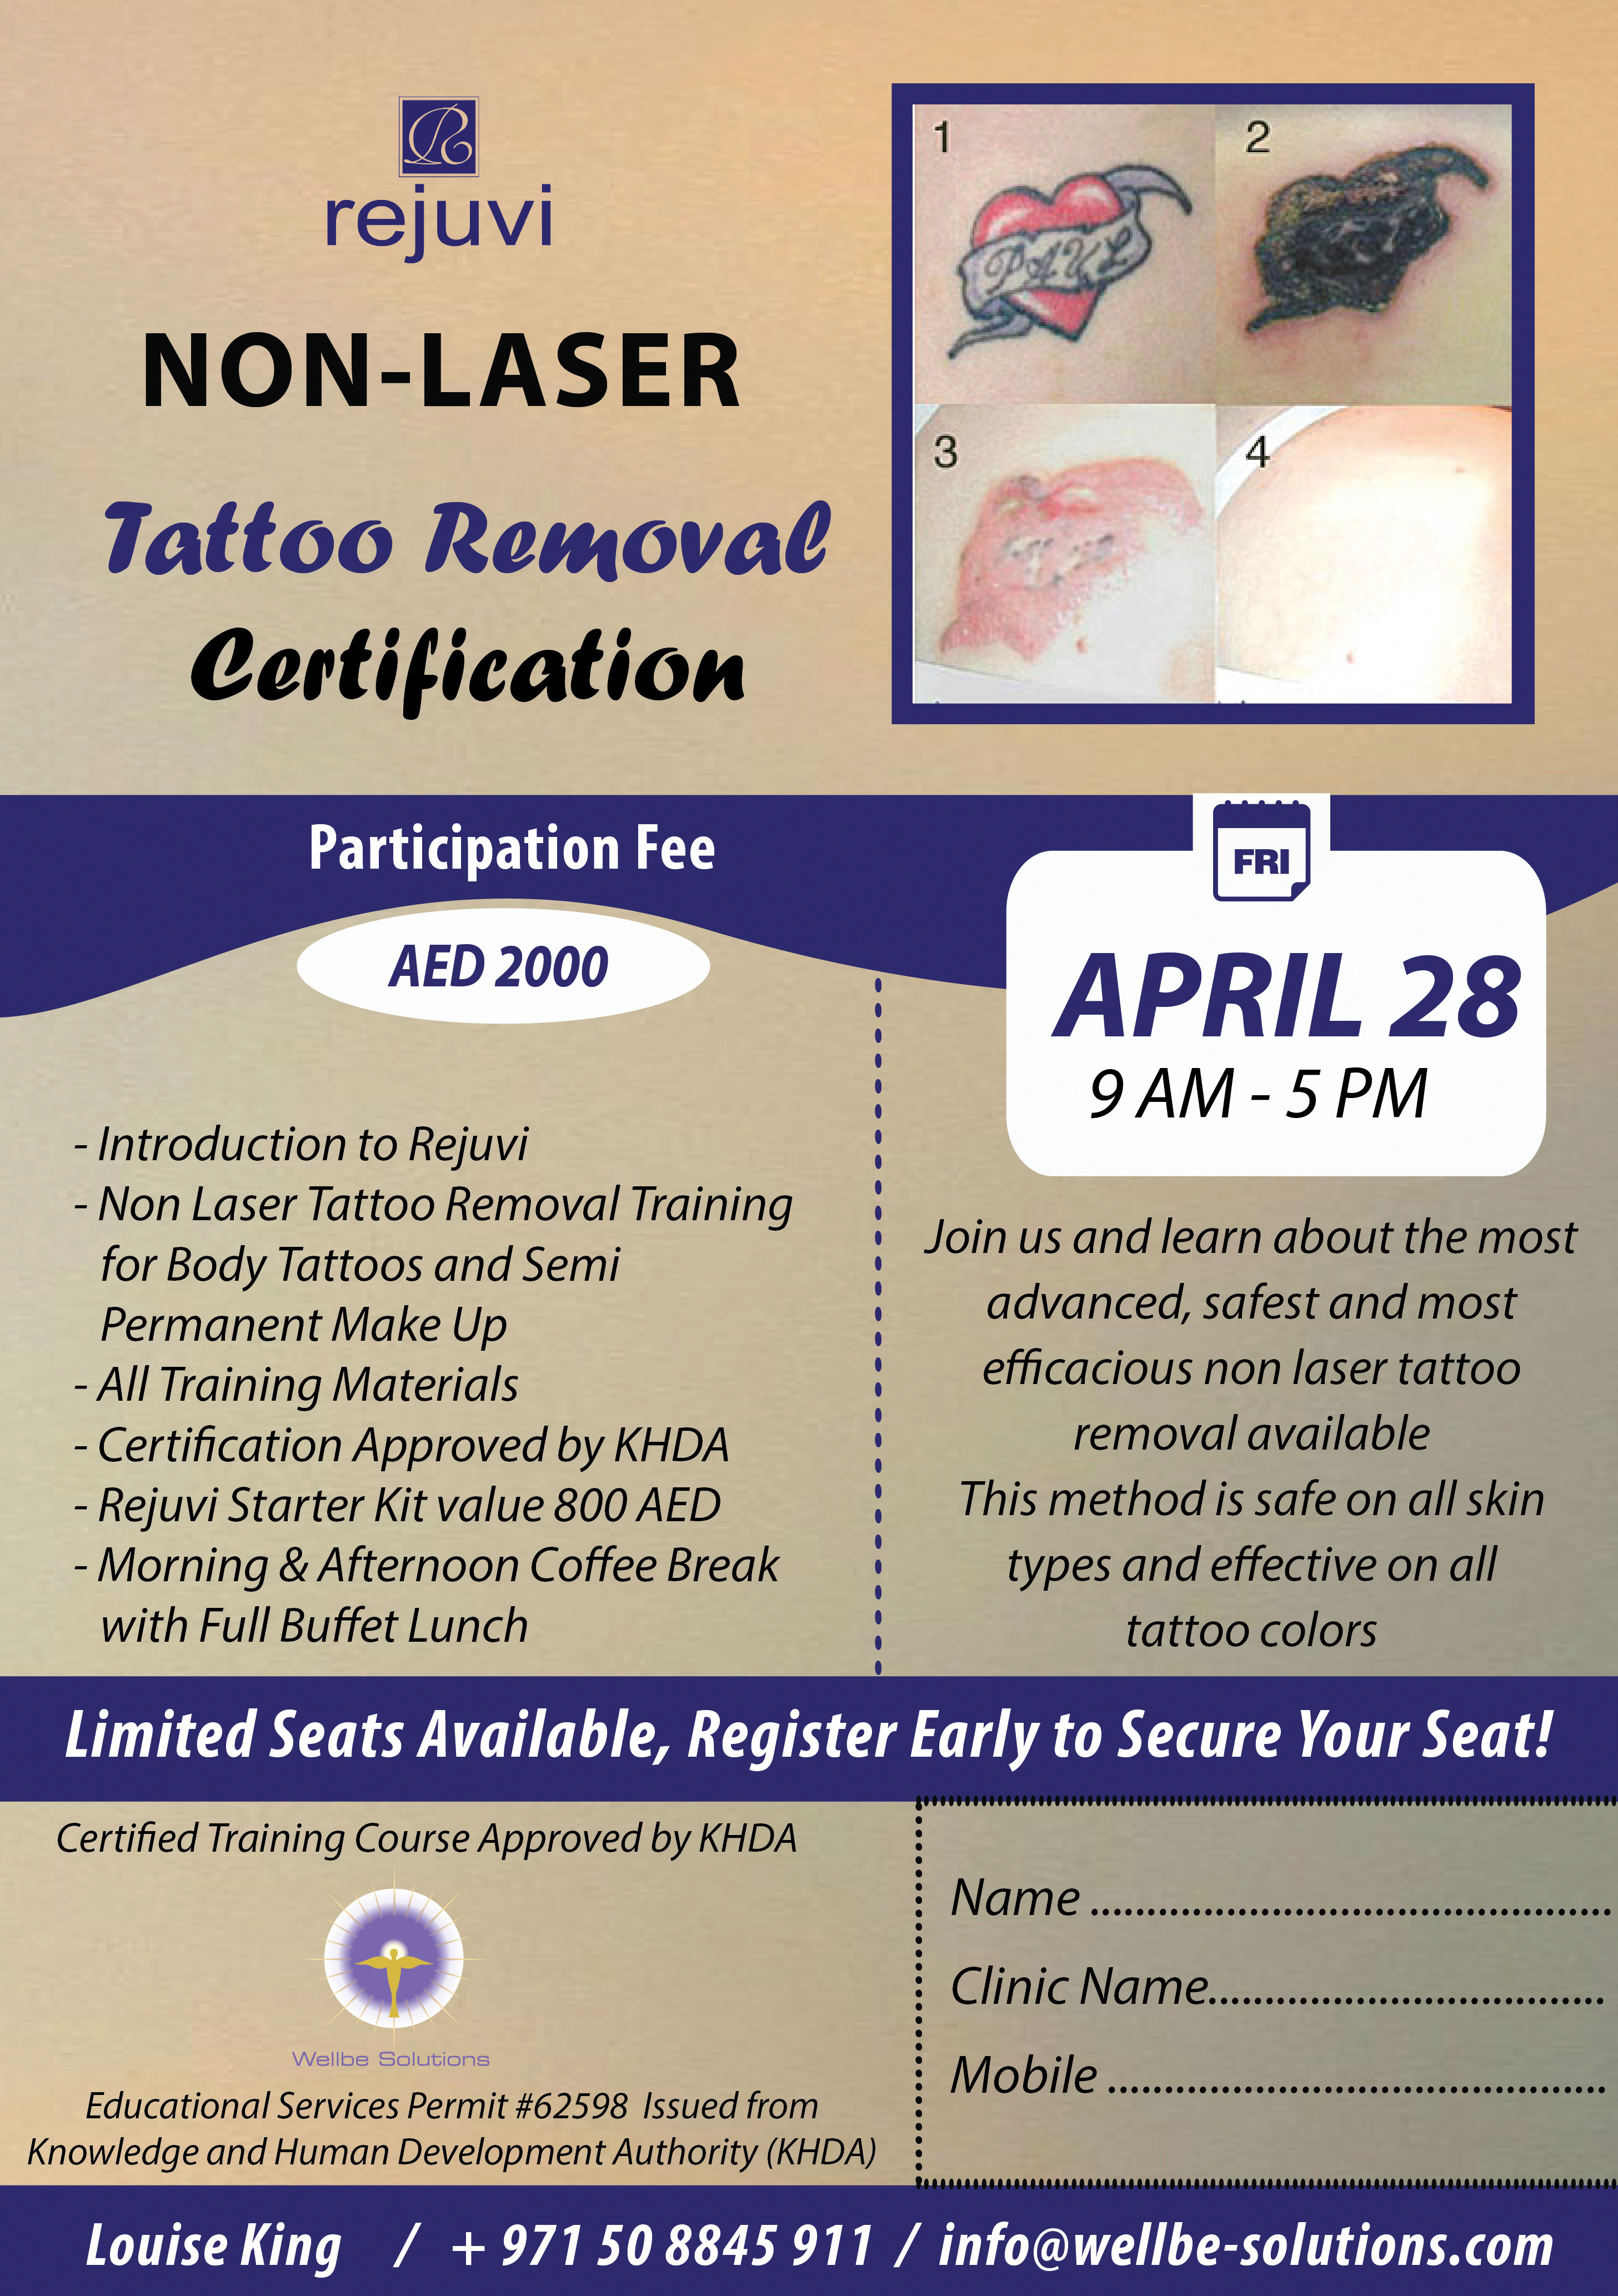 TATTOO REMOVAL - Non Laser REJUVI Certified Training Course